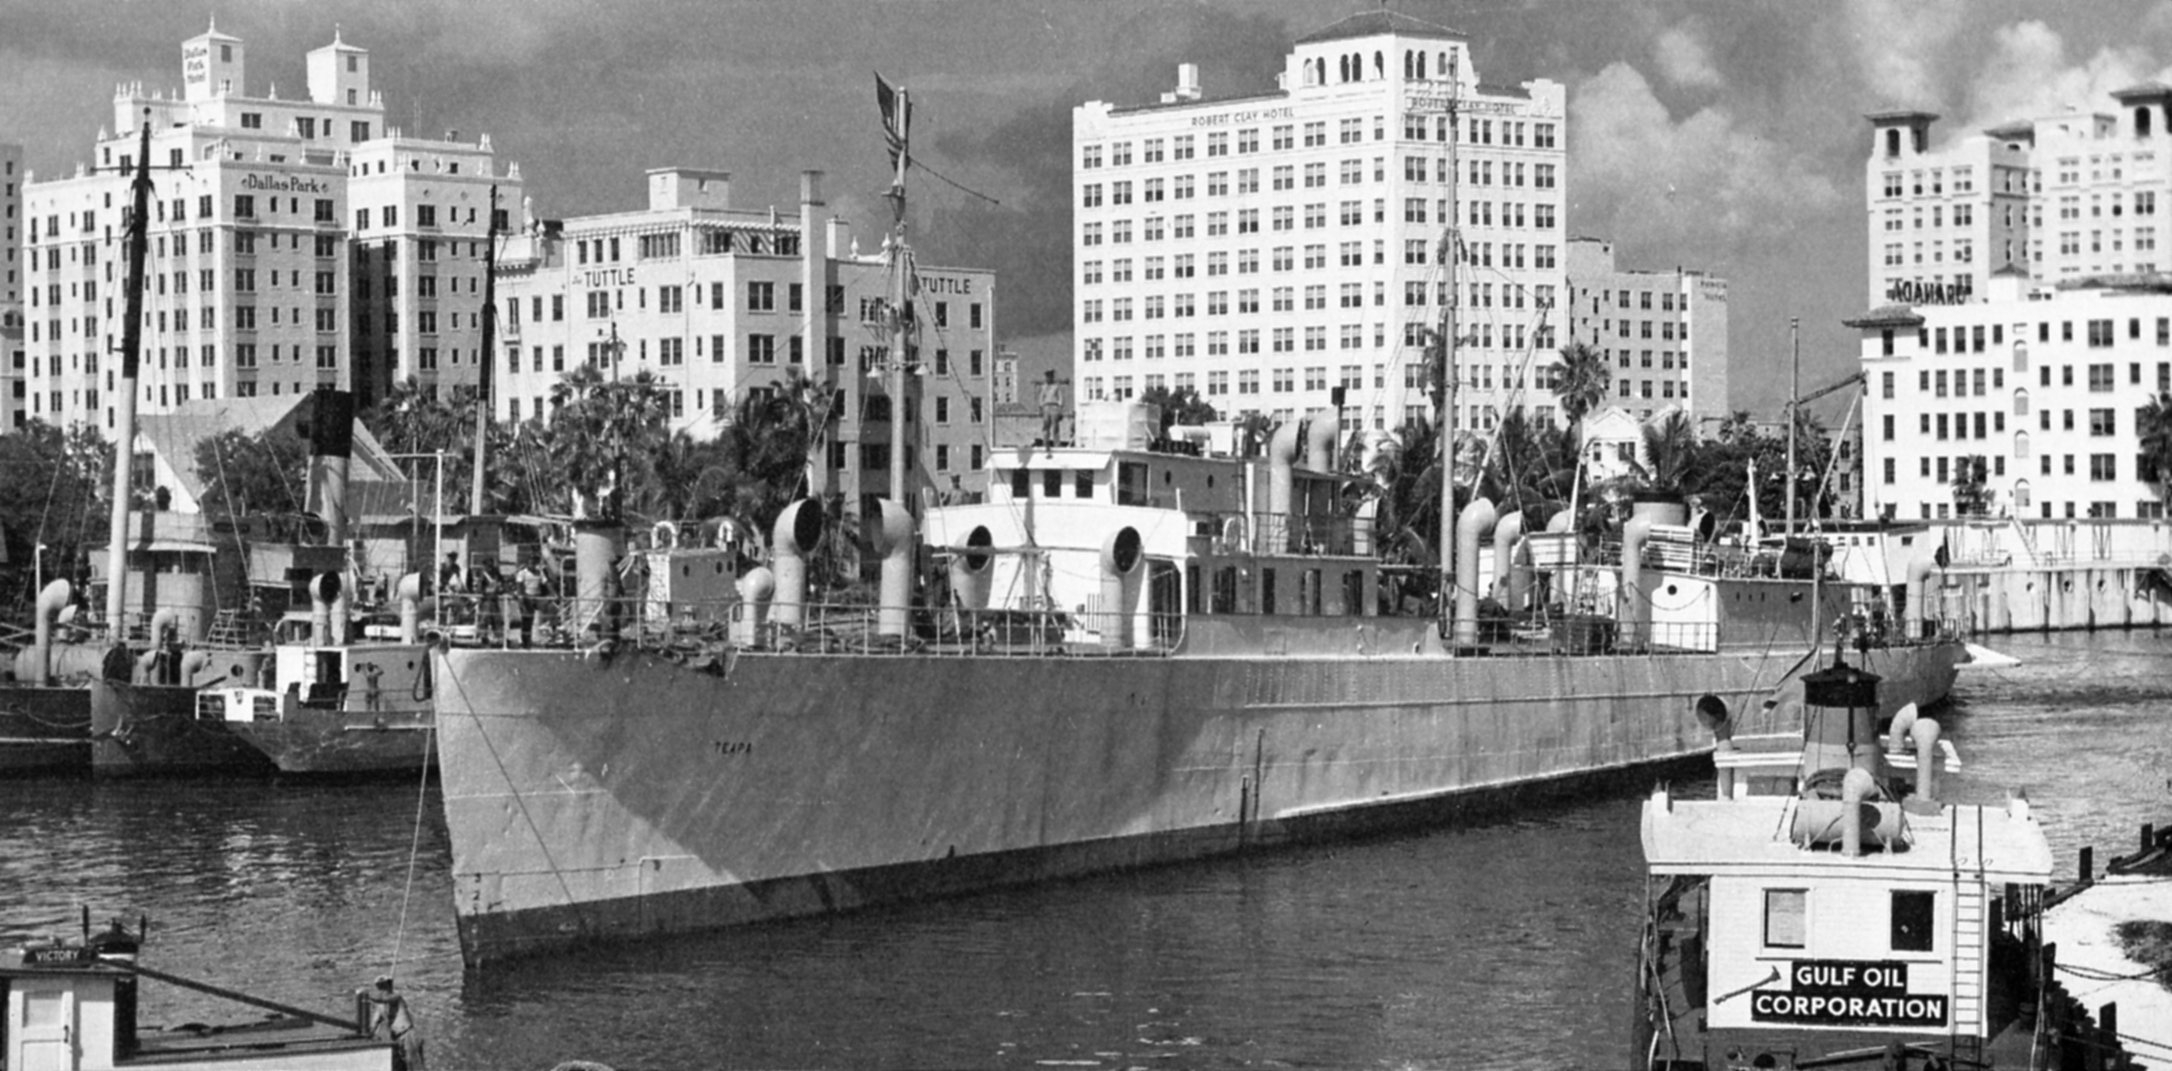 03 MS Teapa after WWII